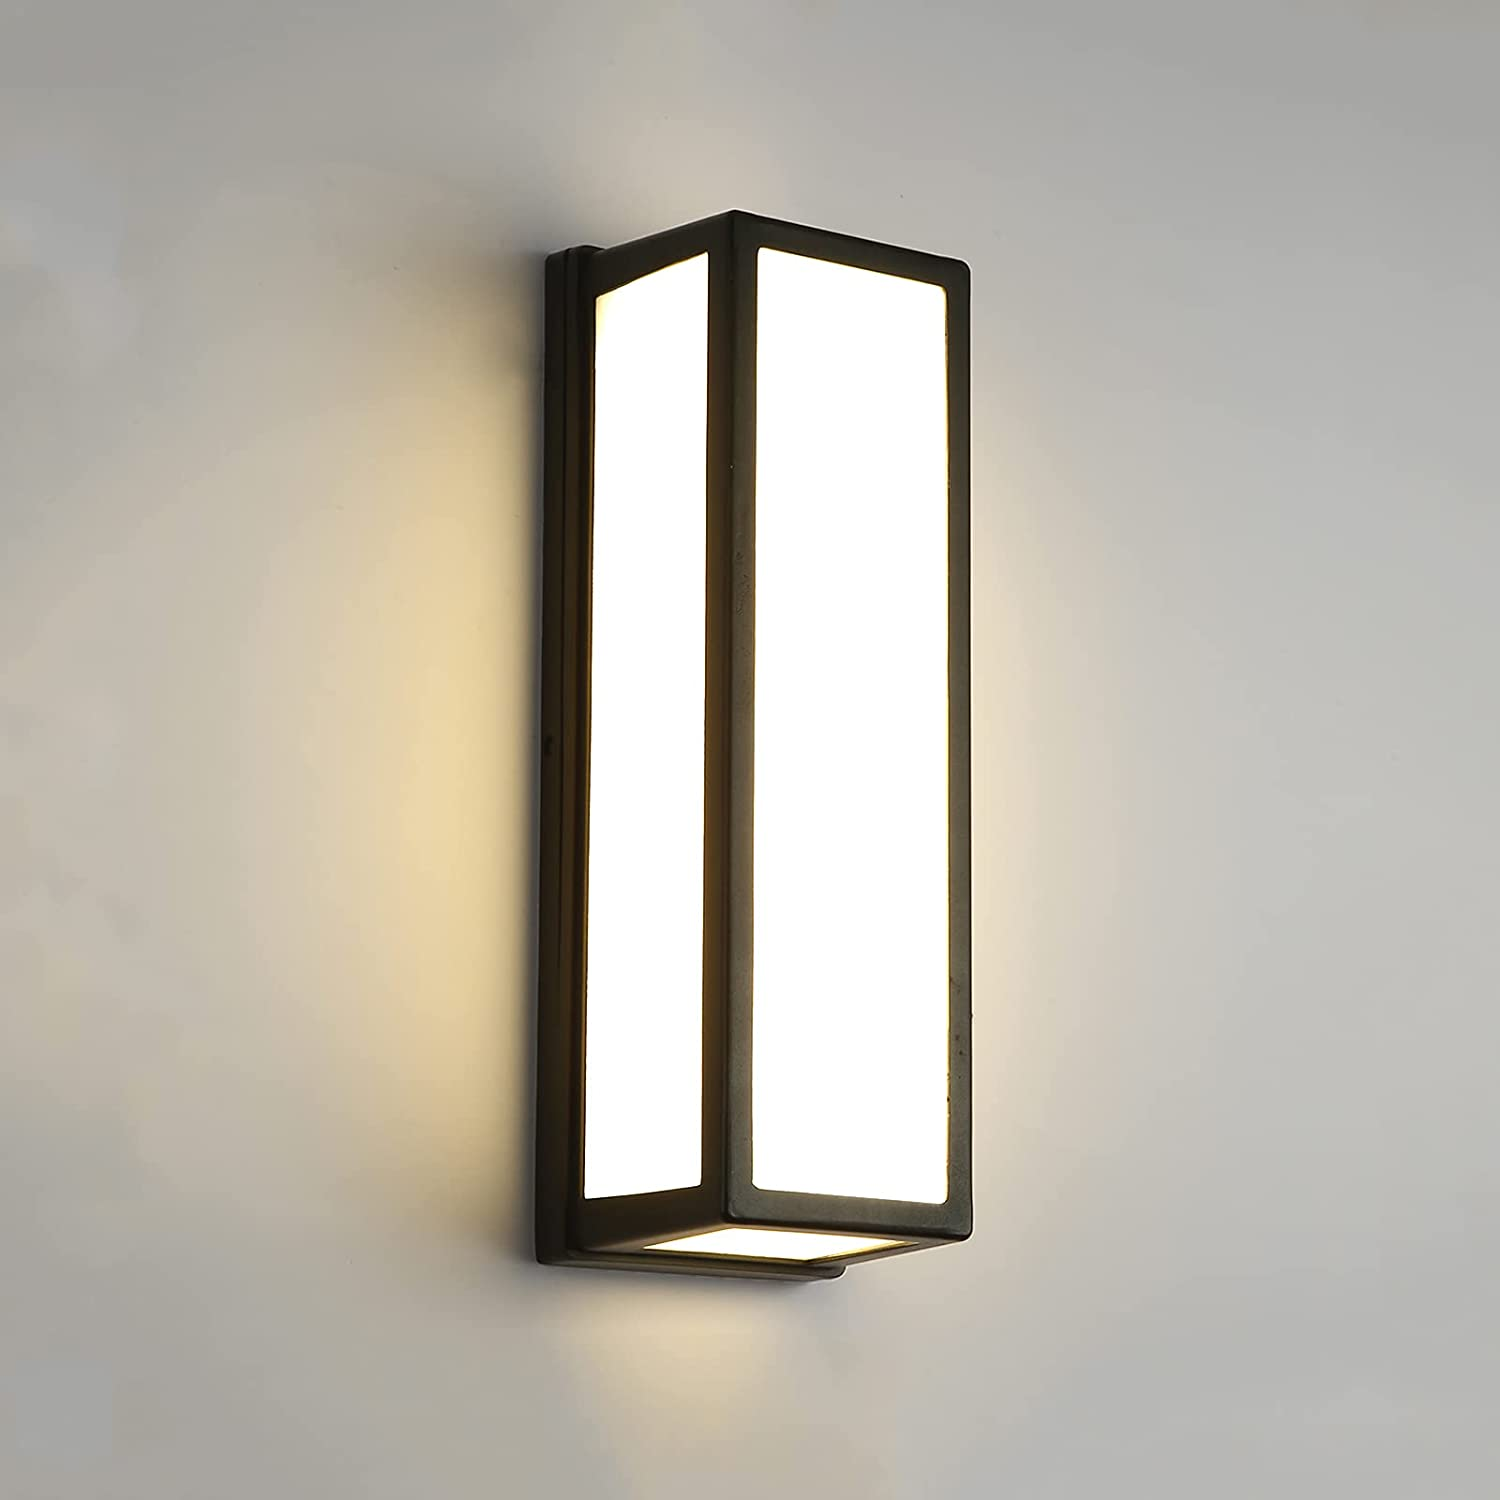 New mail order Max 82% OFF ROSYSKY Outdoor Wall Light Fixtures LED Sc Mounted 30W